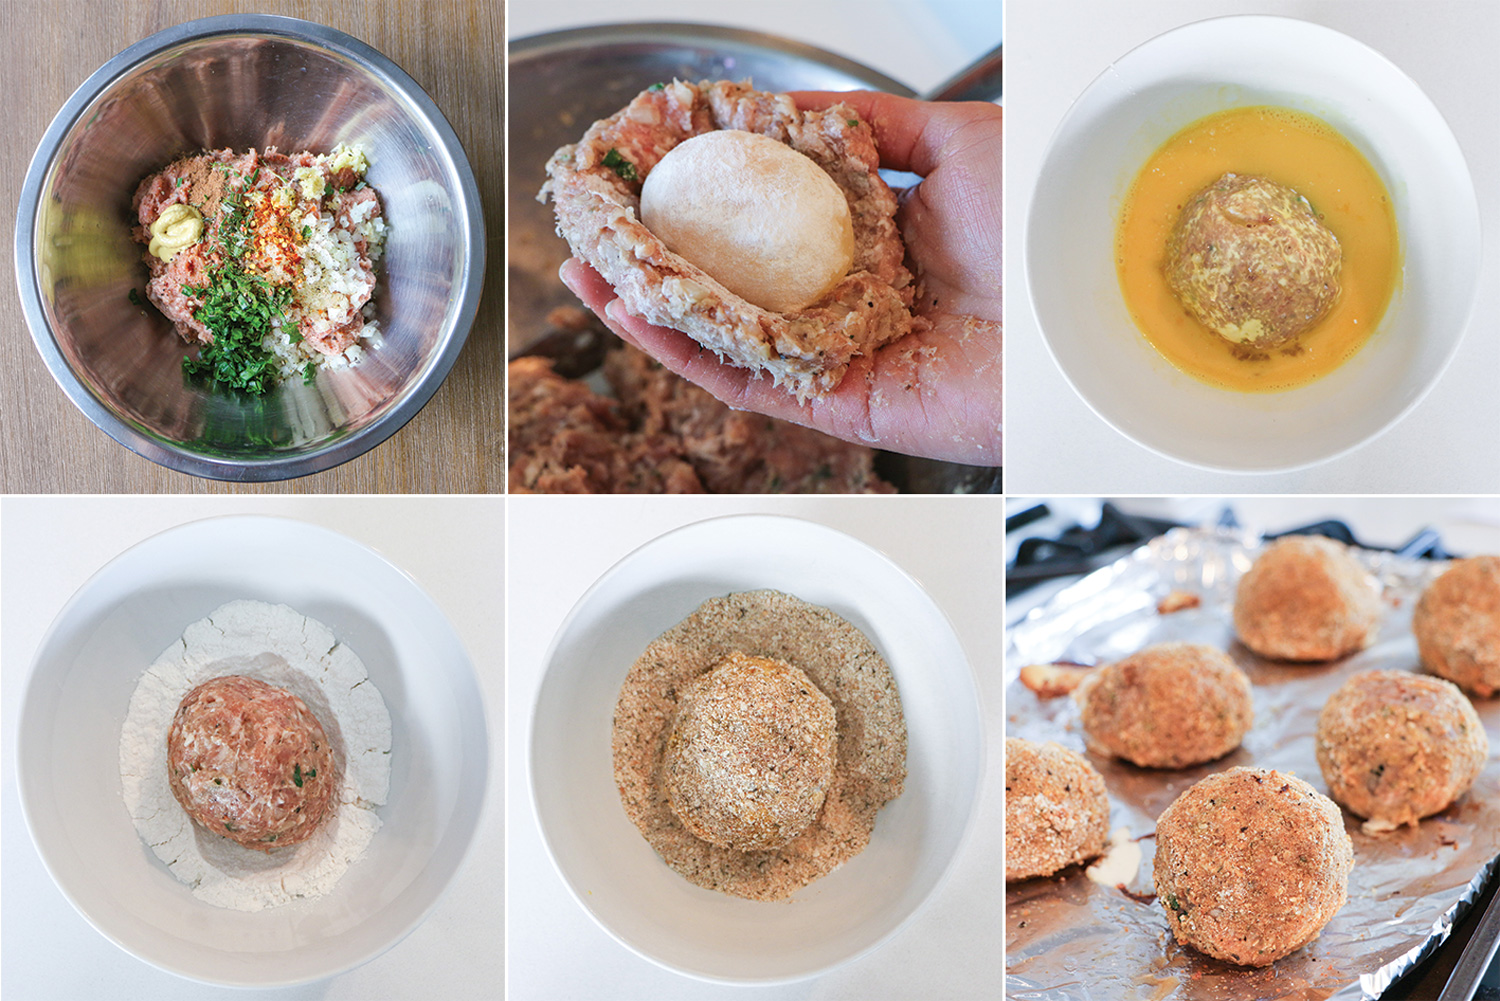 Step by step picture instructions on how to make Scotch eggs